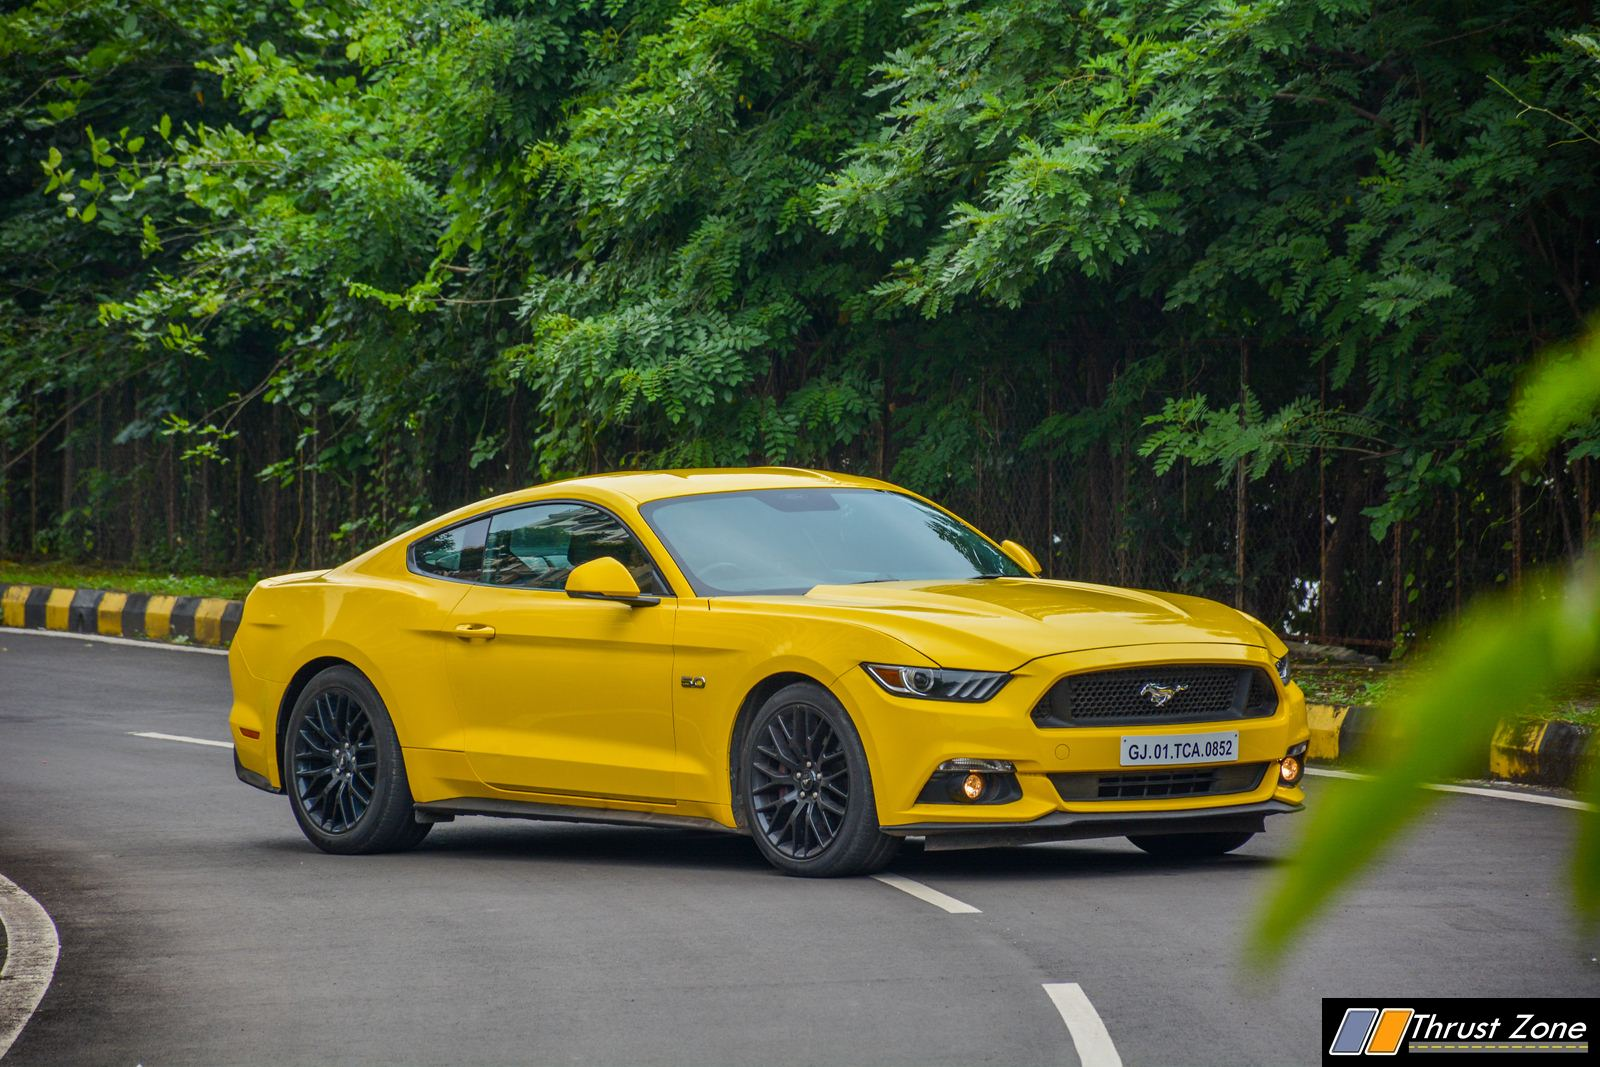 https://www.thrustzone.com/wp-content/uploads/2018/09/Ford-Mustang-India-V8-Review-18.jpg